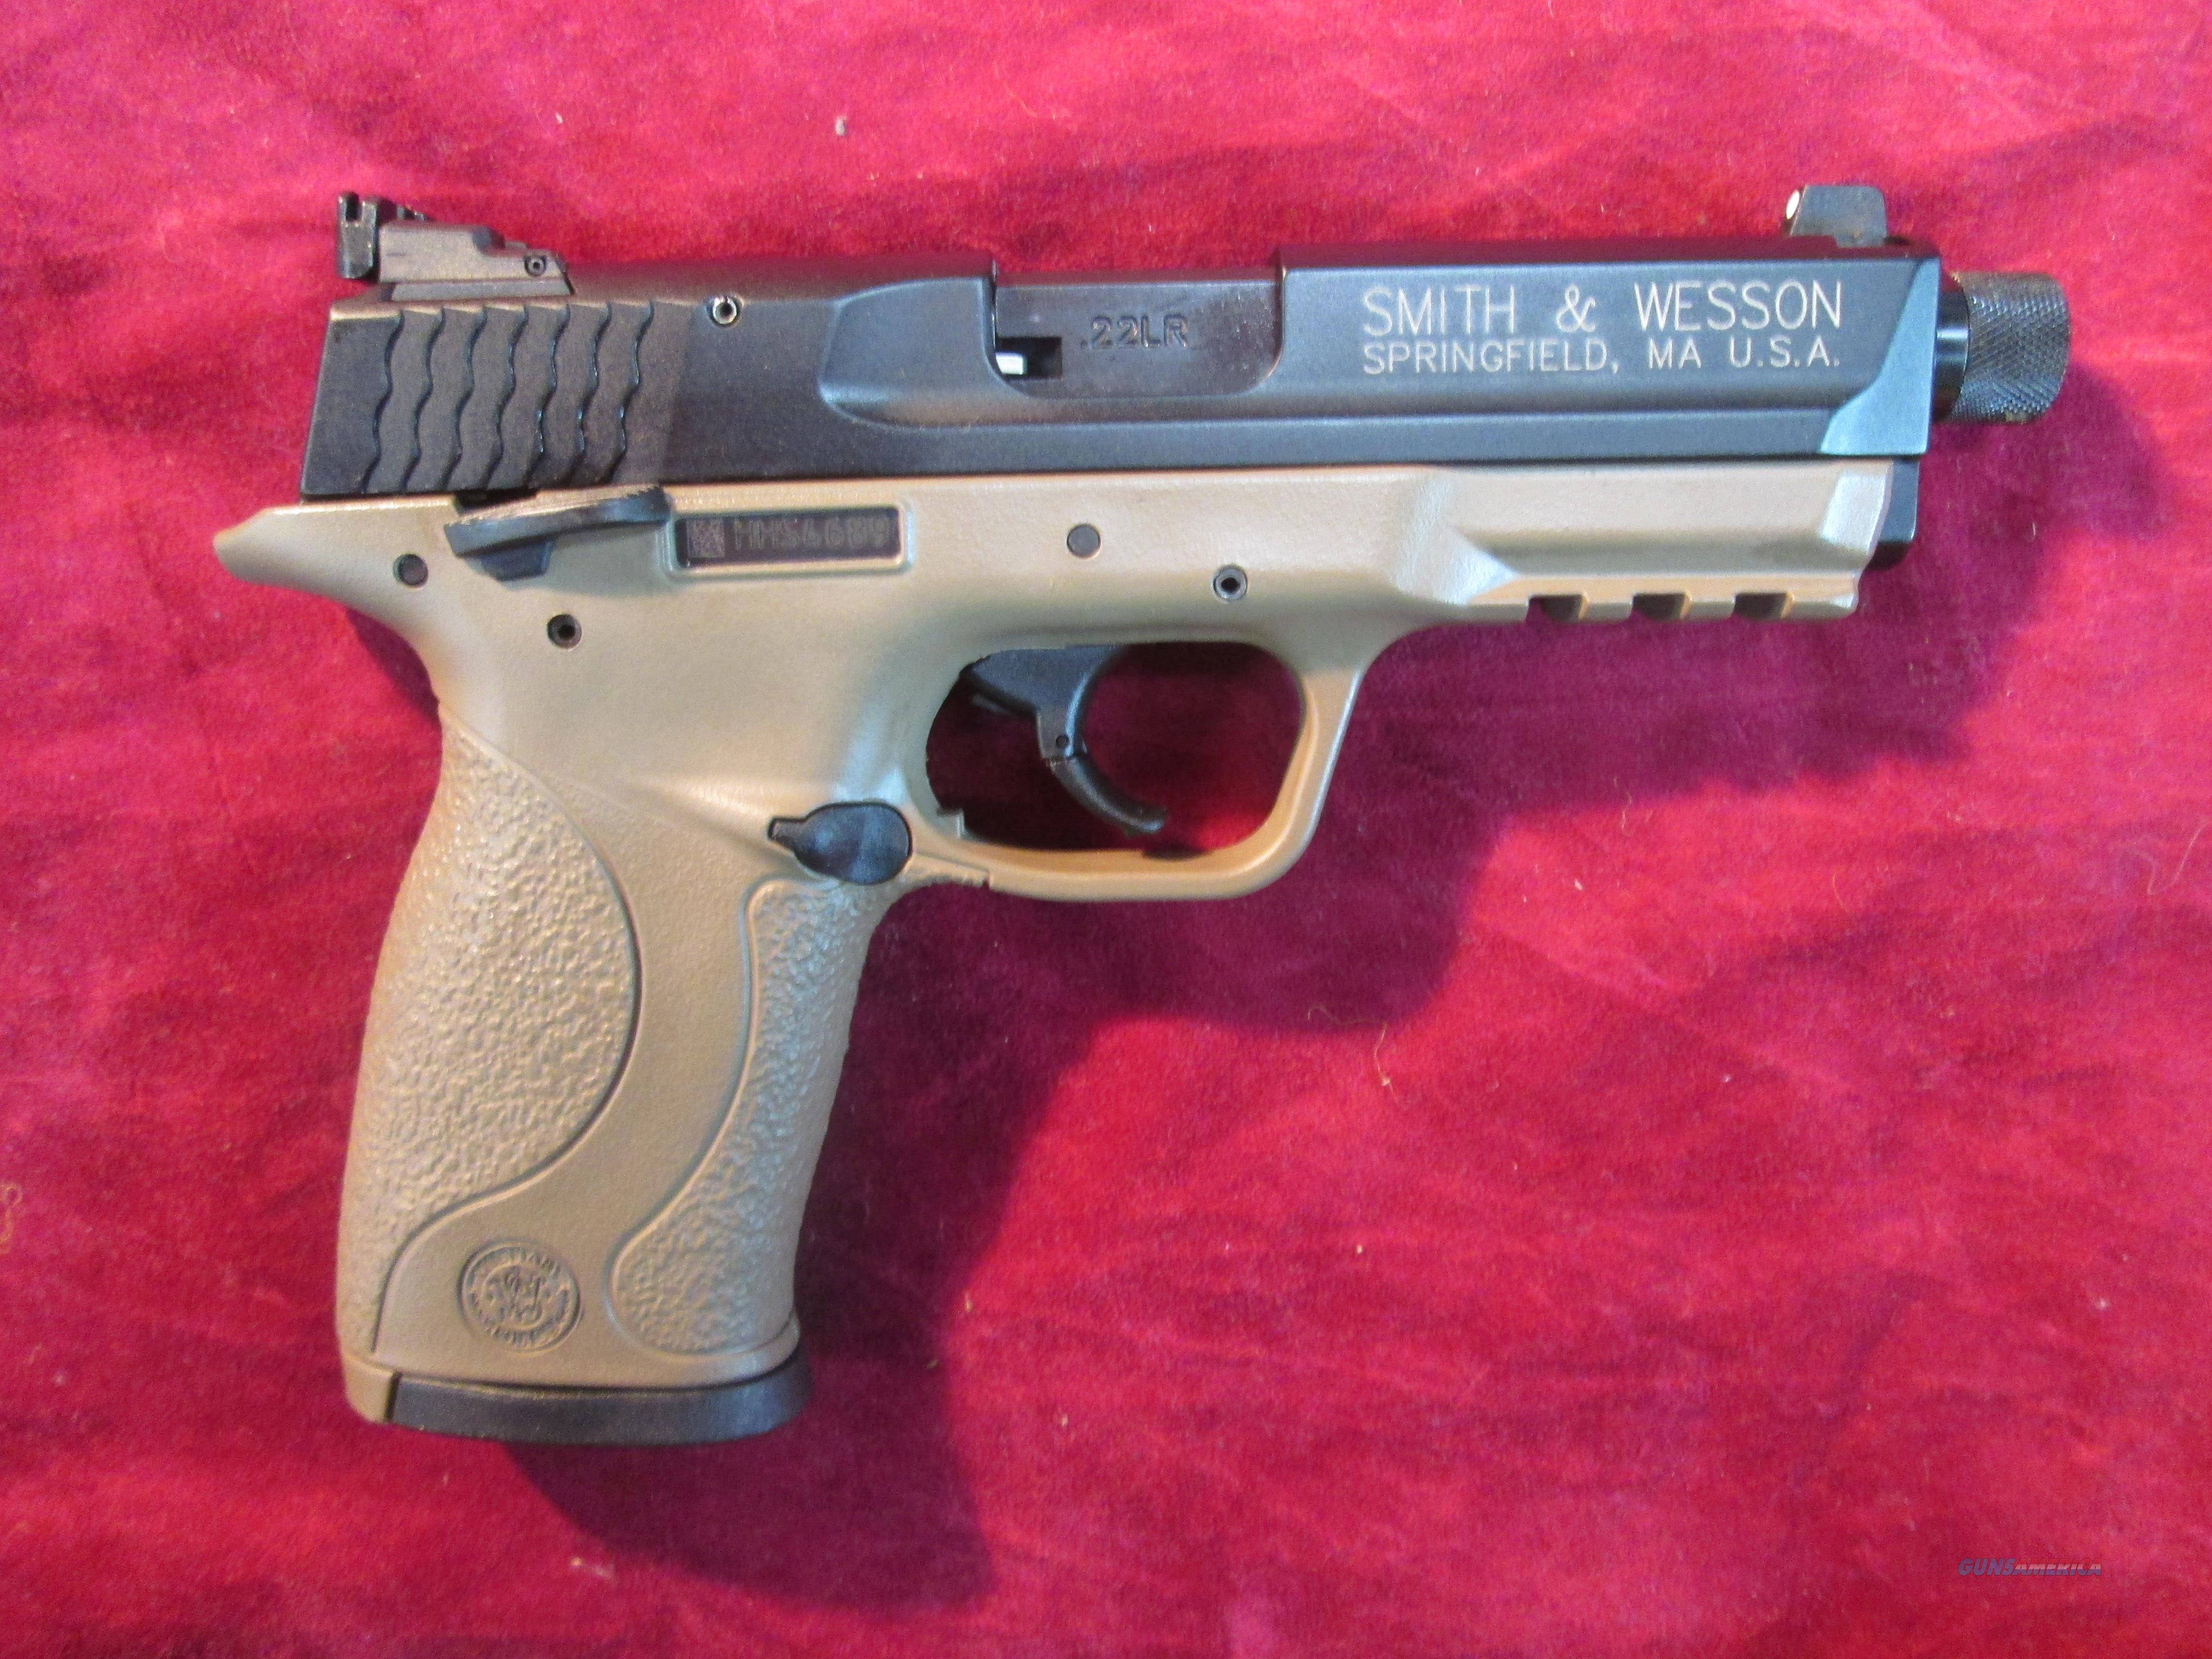 SMITH AND WESSON M&P 22 COMPACT FDE THREADED BARREL 22LR NEW (10242)  Guns > Pistols > Smith & Wesson Pistols - Autos > Polymer Frame